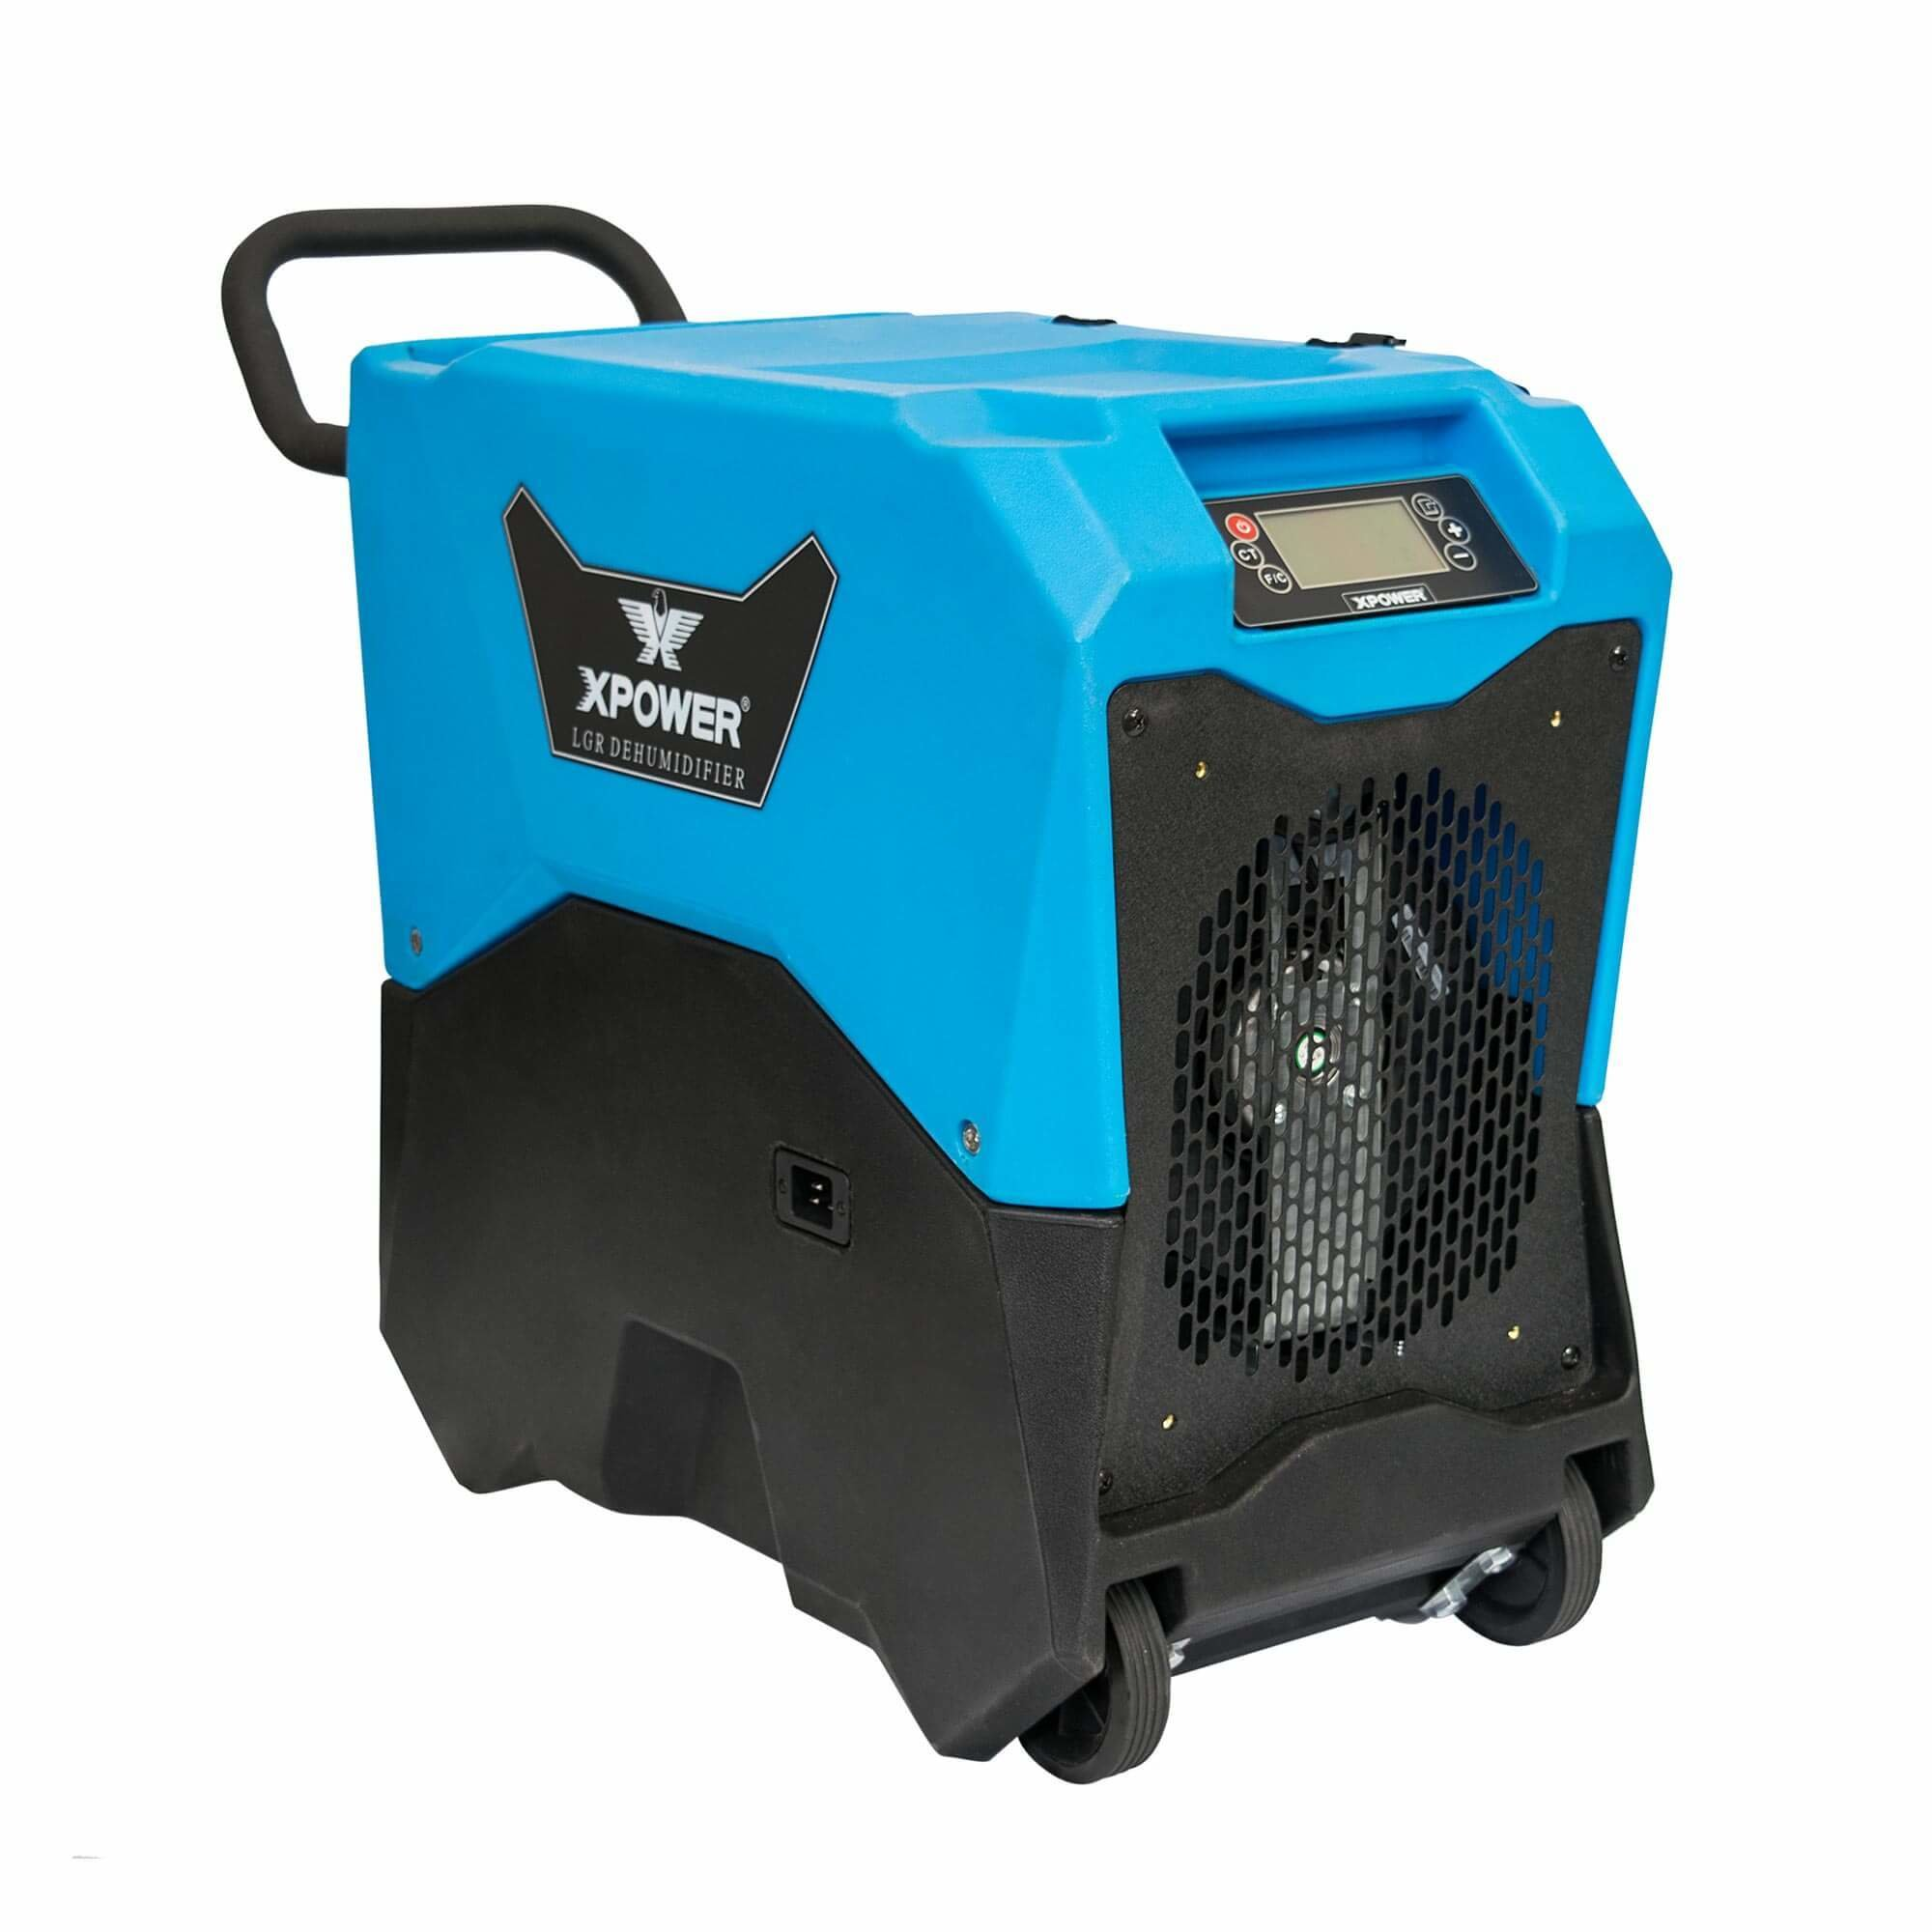 XPOWER XD-85LH Commercial LGR Dehumidifier w/ Handle & Wheels XD-85LH